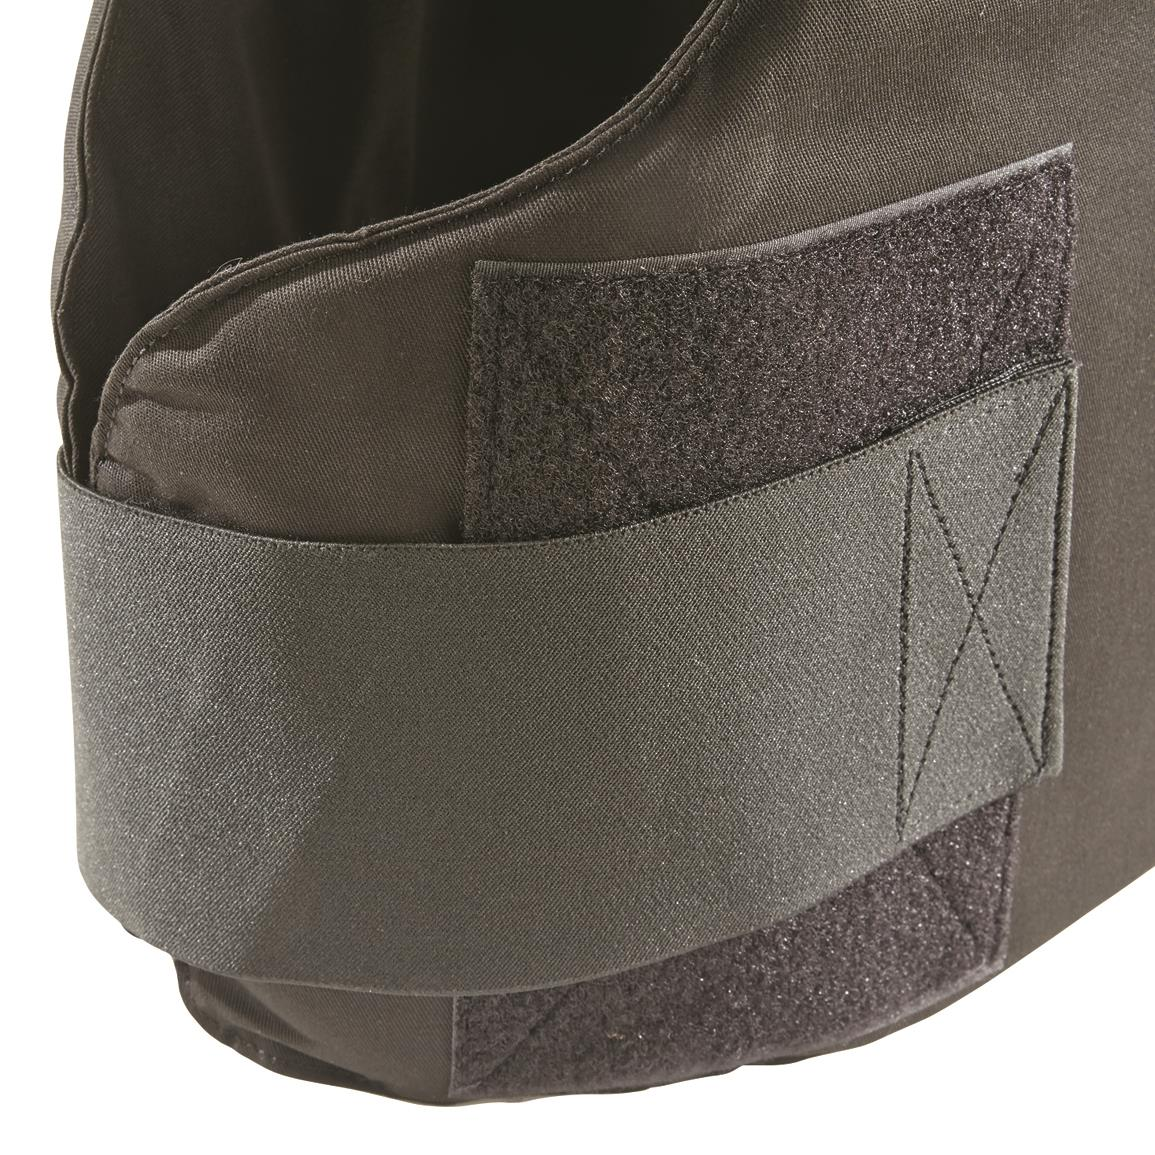 Full-coverage integrated Kevlar soft armor on front, back and sides